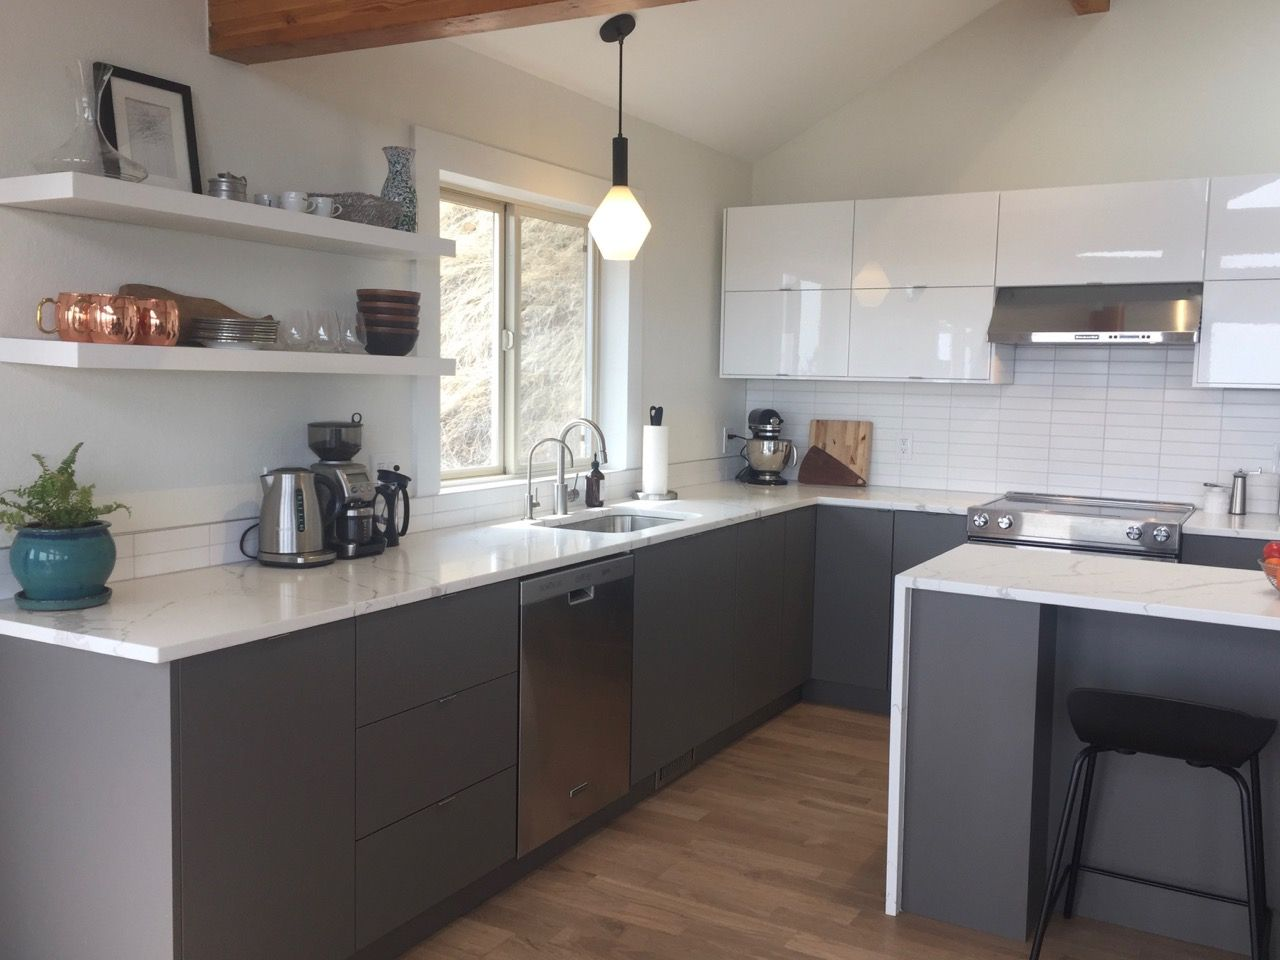 Create A Modern Two Tone Look For Your Ikea Cabinets In 2020 Ikea Cabinets Ikea Home Interior Design